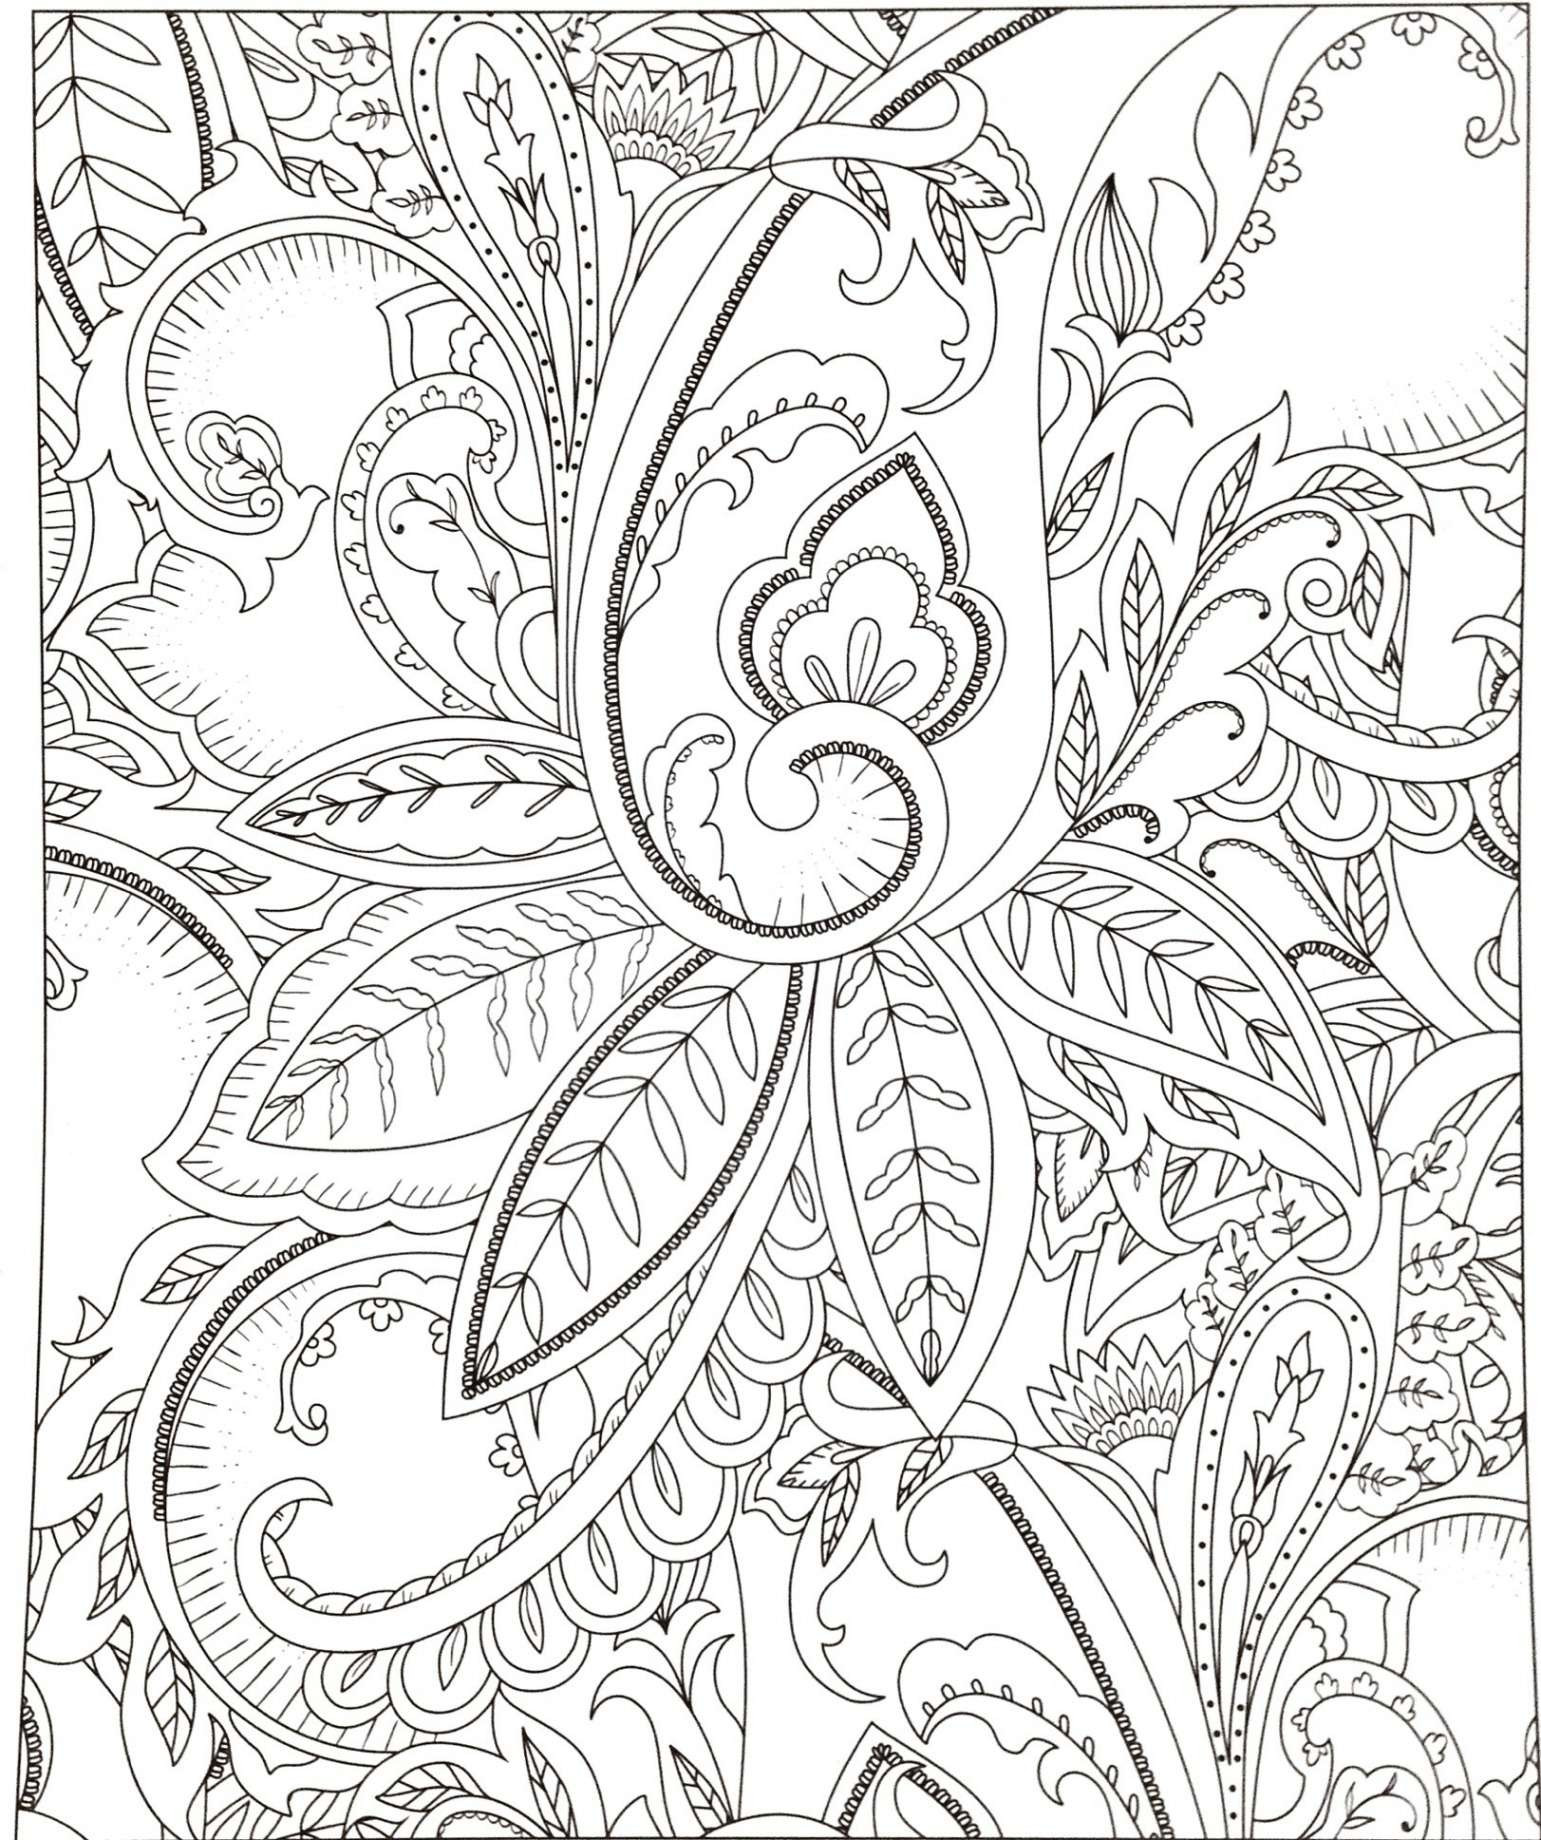 mickey mouse vase of coloring pages mouse mickey mouse christmas coloring pages free throughout coloring pages mouse mickey mouse christmas coloring pages free print